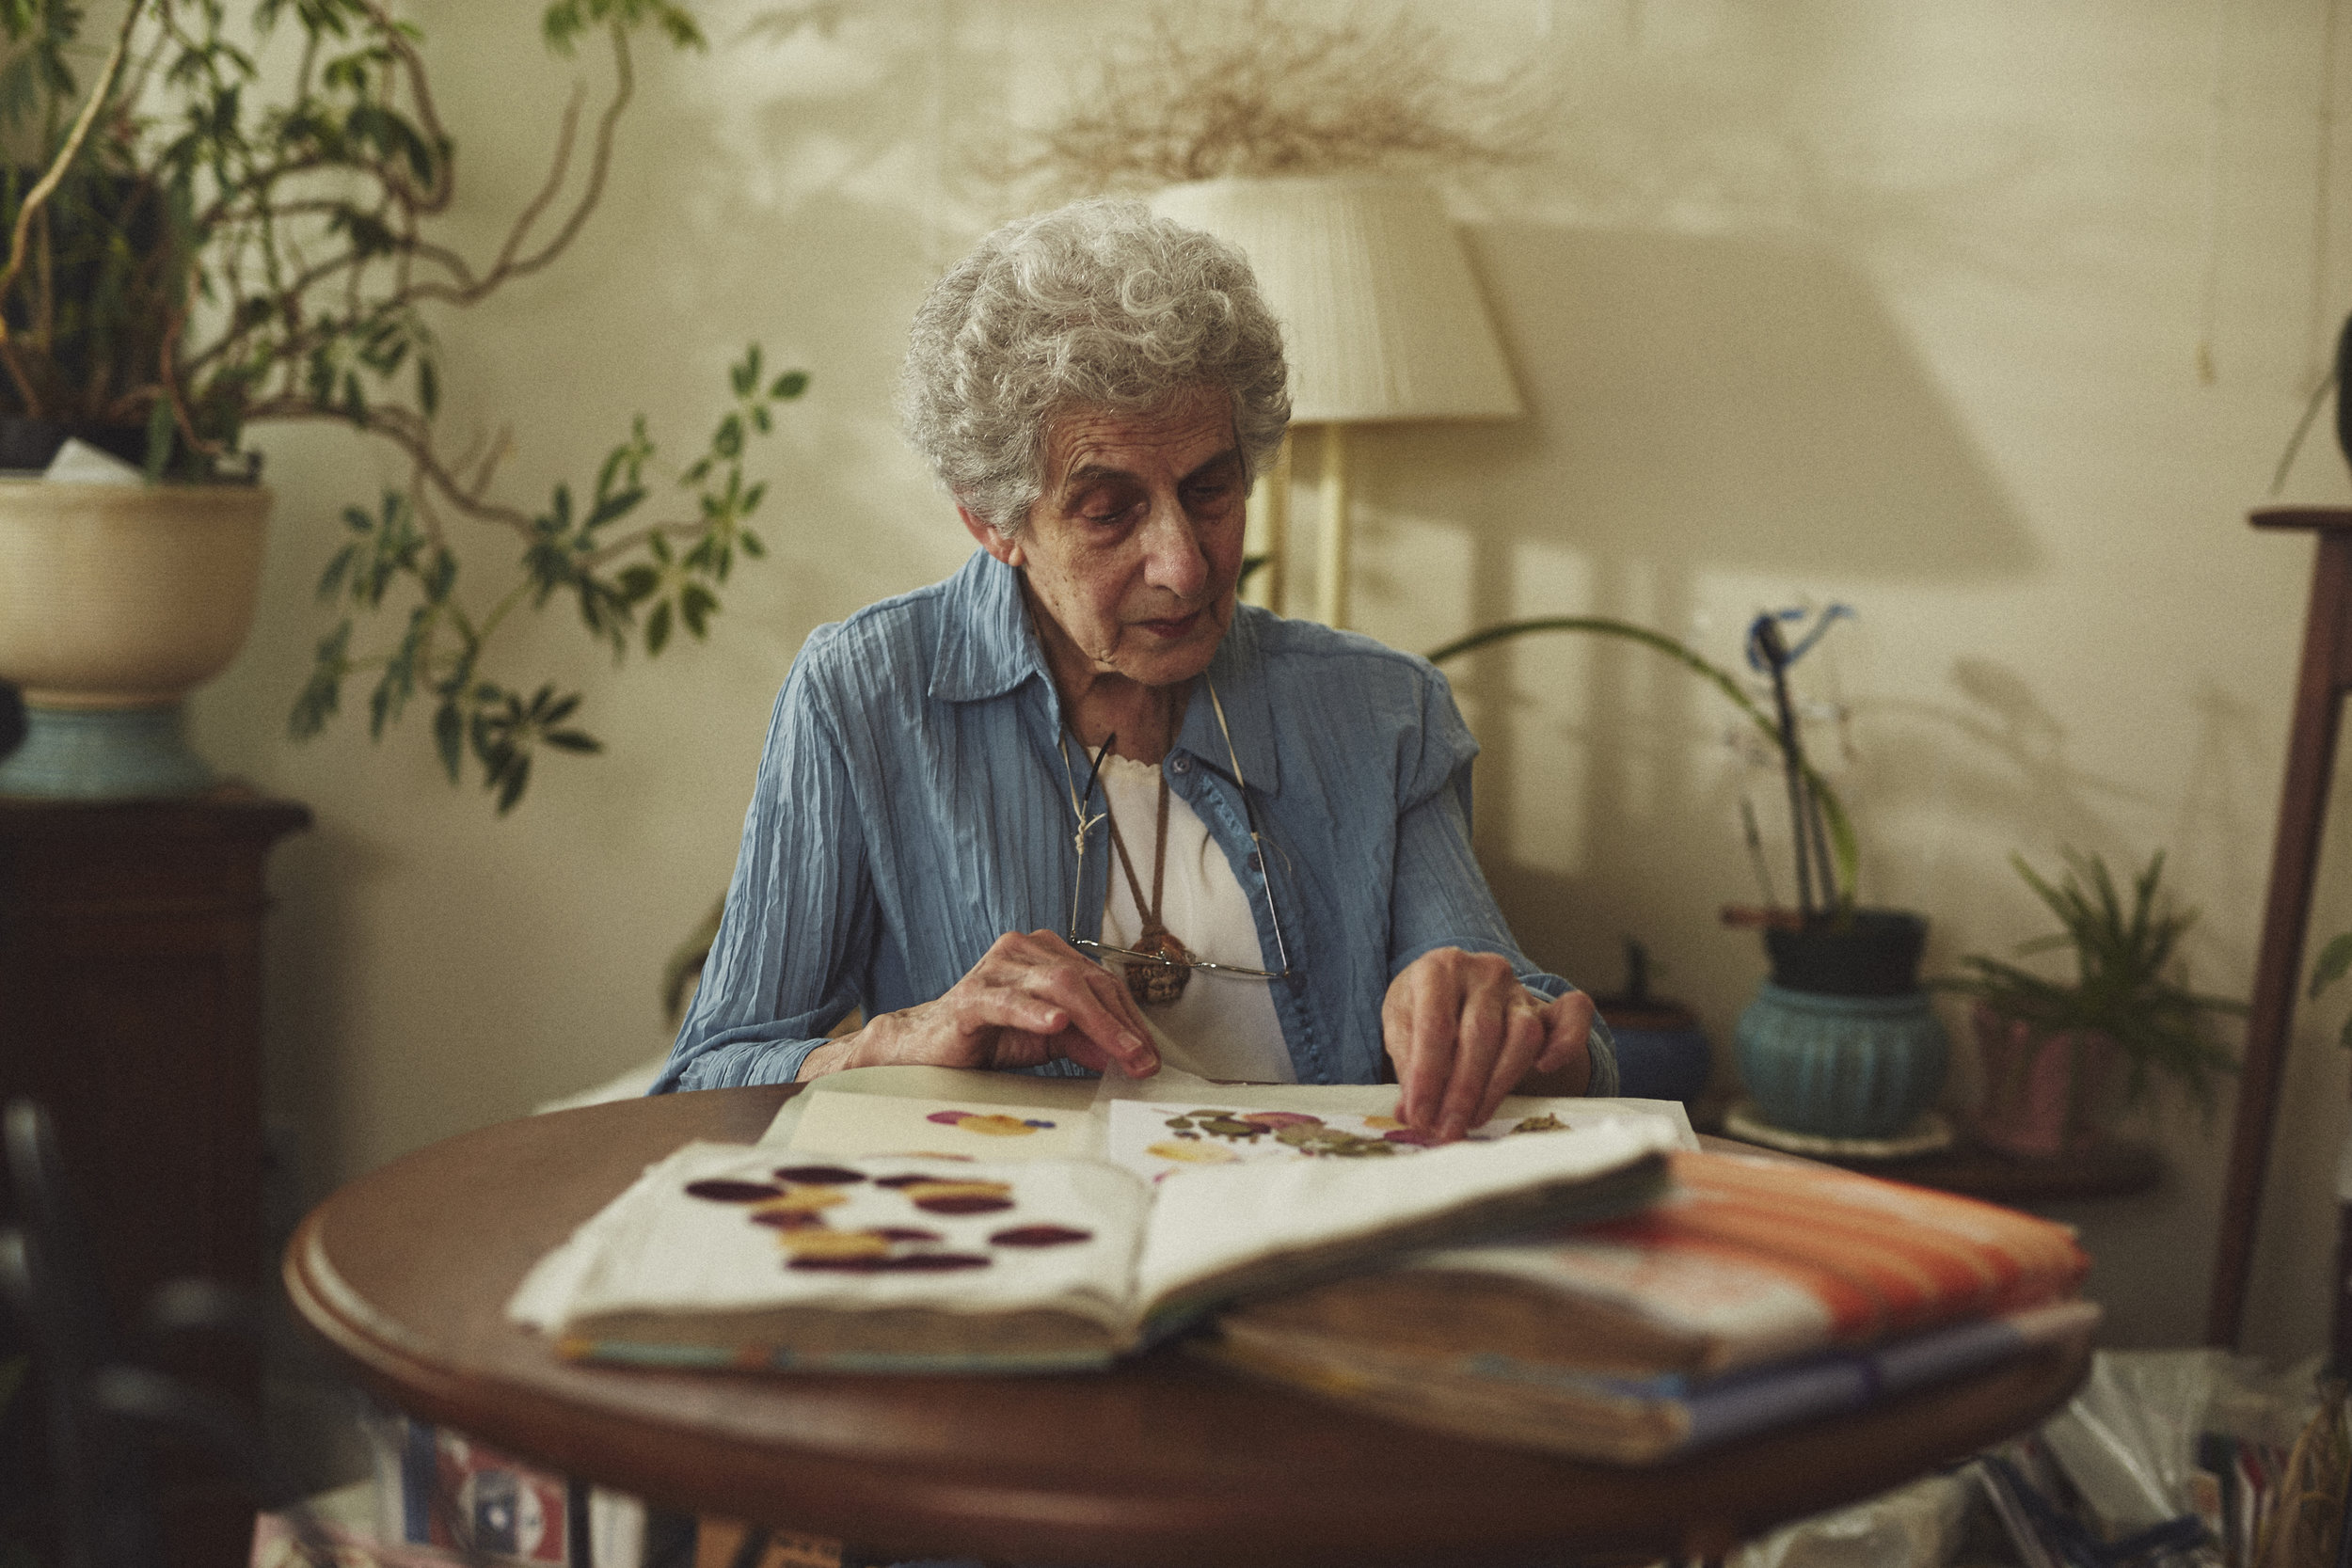 Beautiful Grandmother in Home Portrait